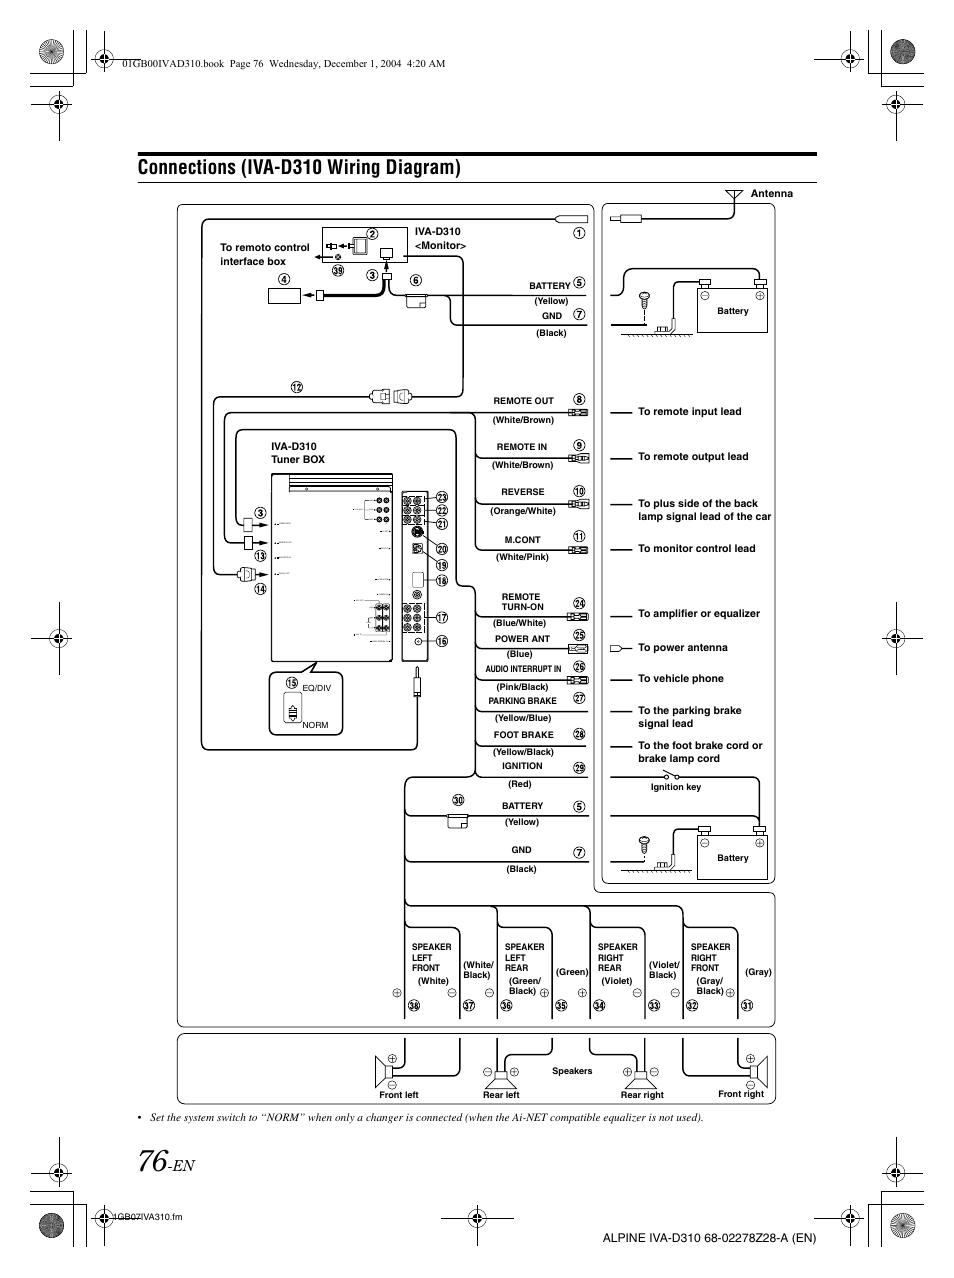 alpine iva d310 page78?resize\\\\\\\\\\\\\\\=665%2C891 wiring diagram 2004 sun deck gandul 45 77 79 119  at readyjetset.co